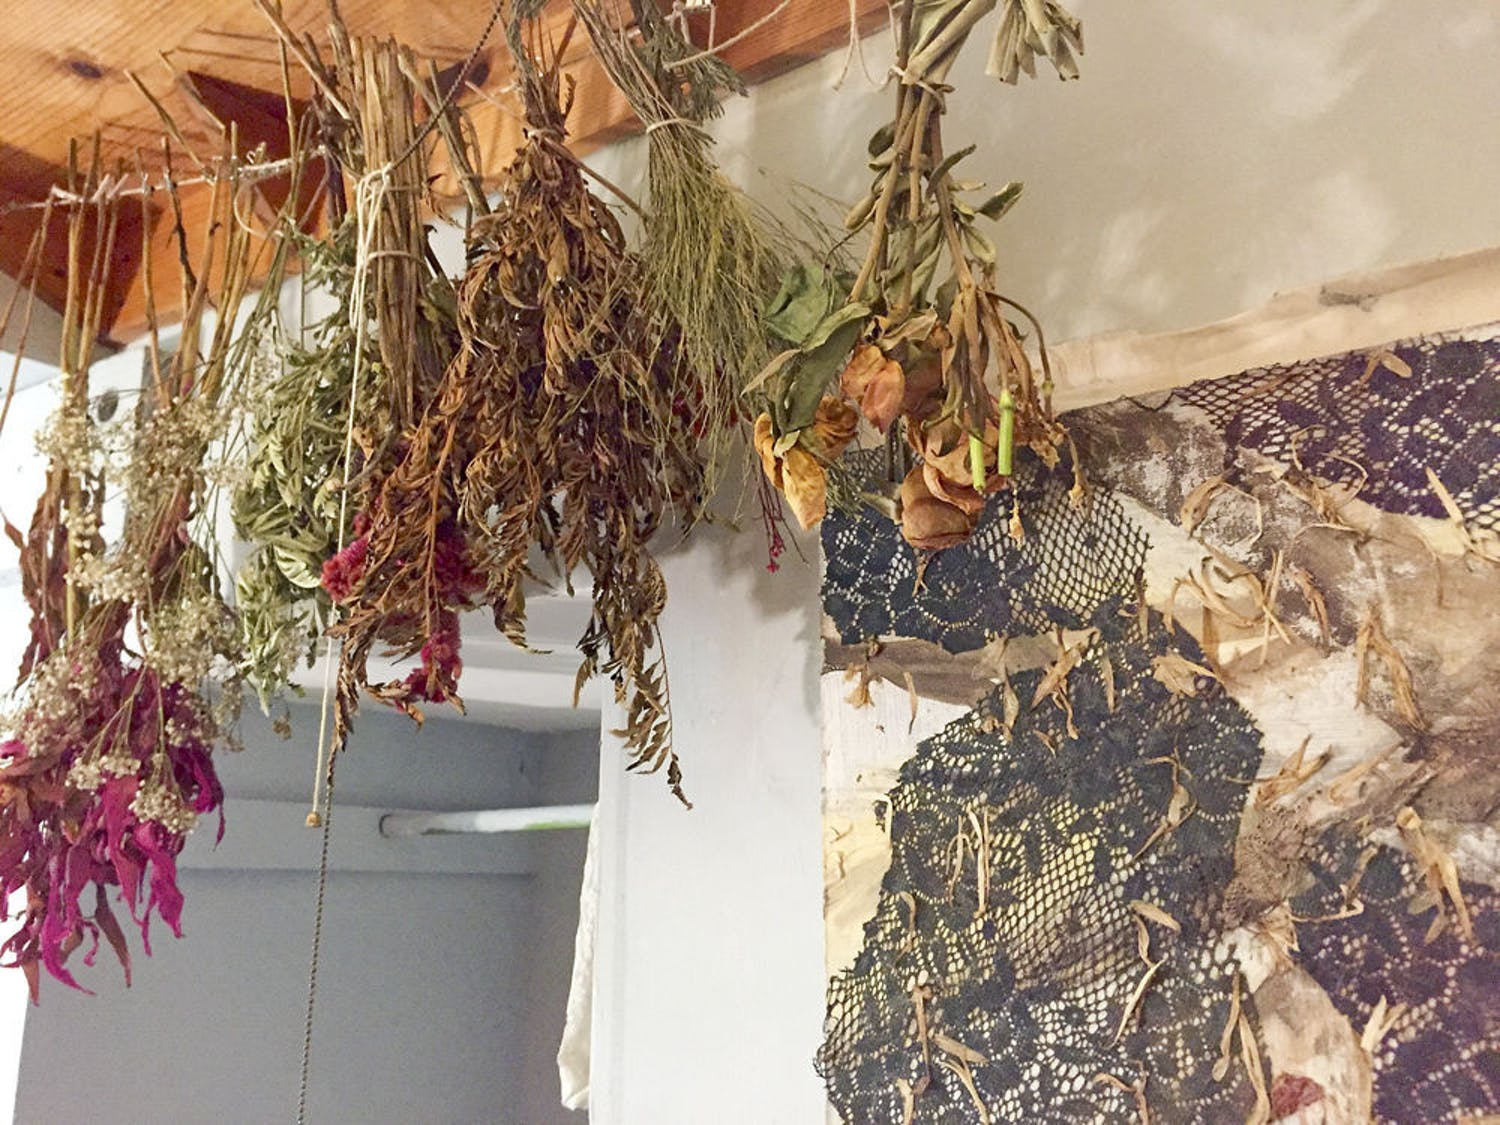 Pictured are the dried flowers Horner has collected from customers and hung to preserve them for use in art.